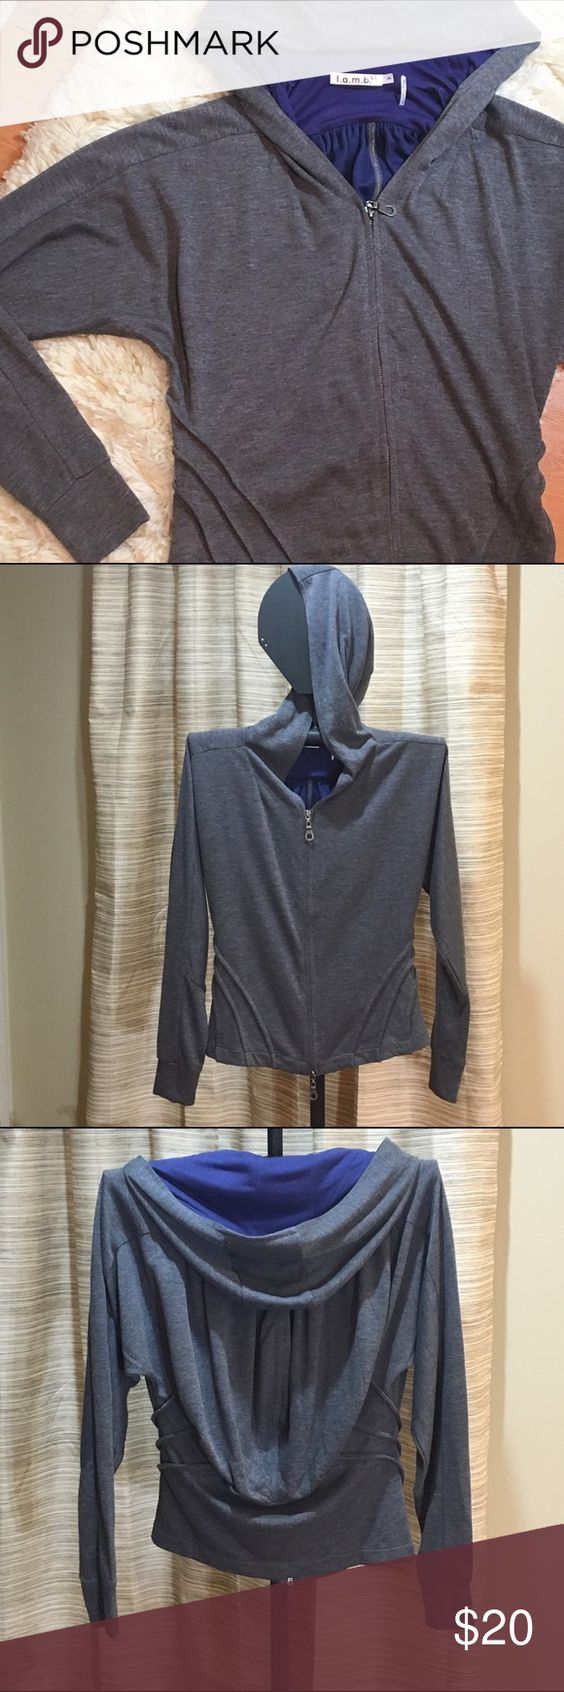 Flash sale! L.A.M.B. gray zip hoodie Super unique hoodie with navy lining and flowy back. It is in perfect condition and is perfect for those days you just want to wear a hoodie but still look stylish. L.A.M.B. Tops Sweatshirts & Hoodies